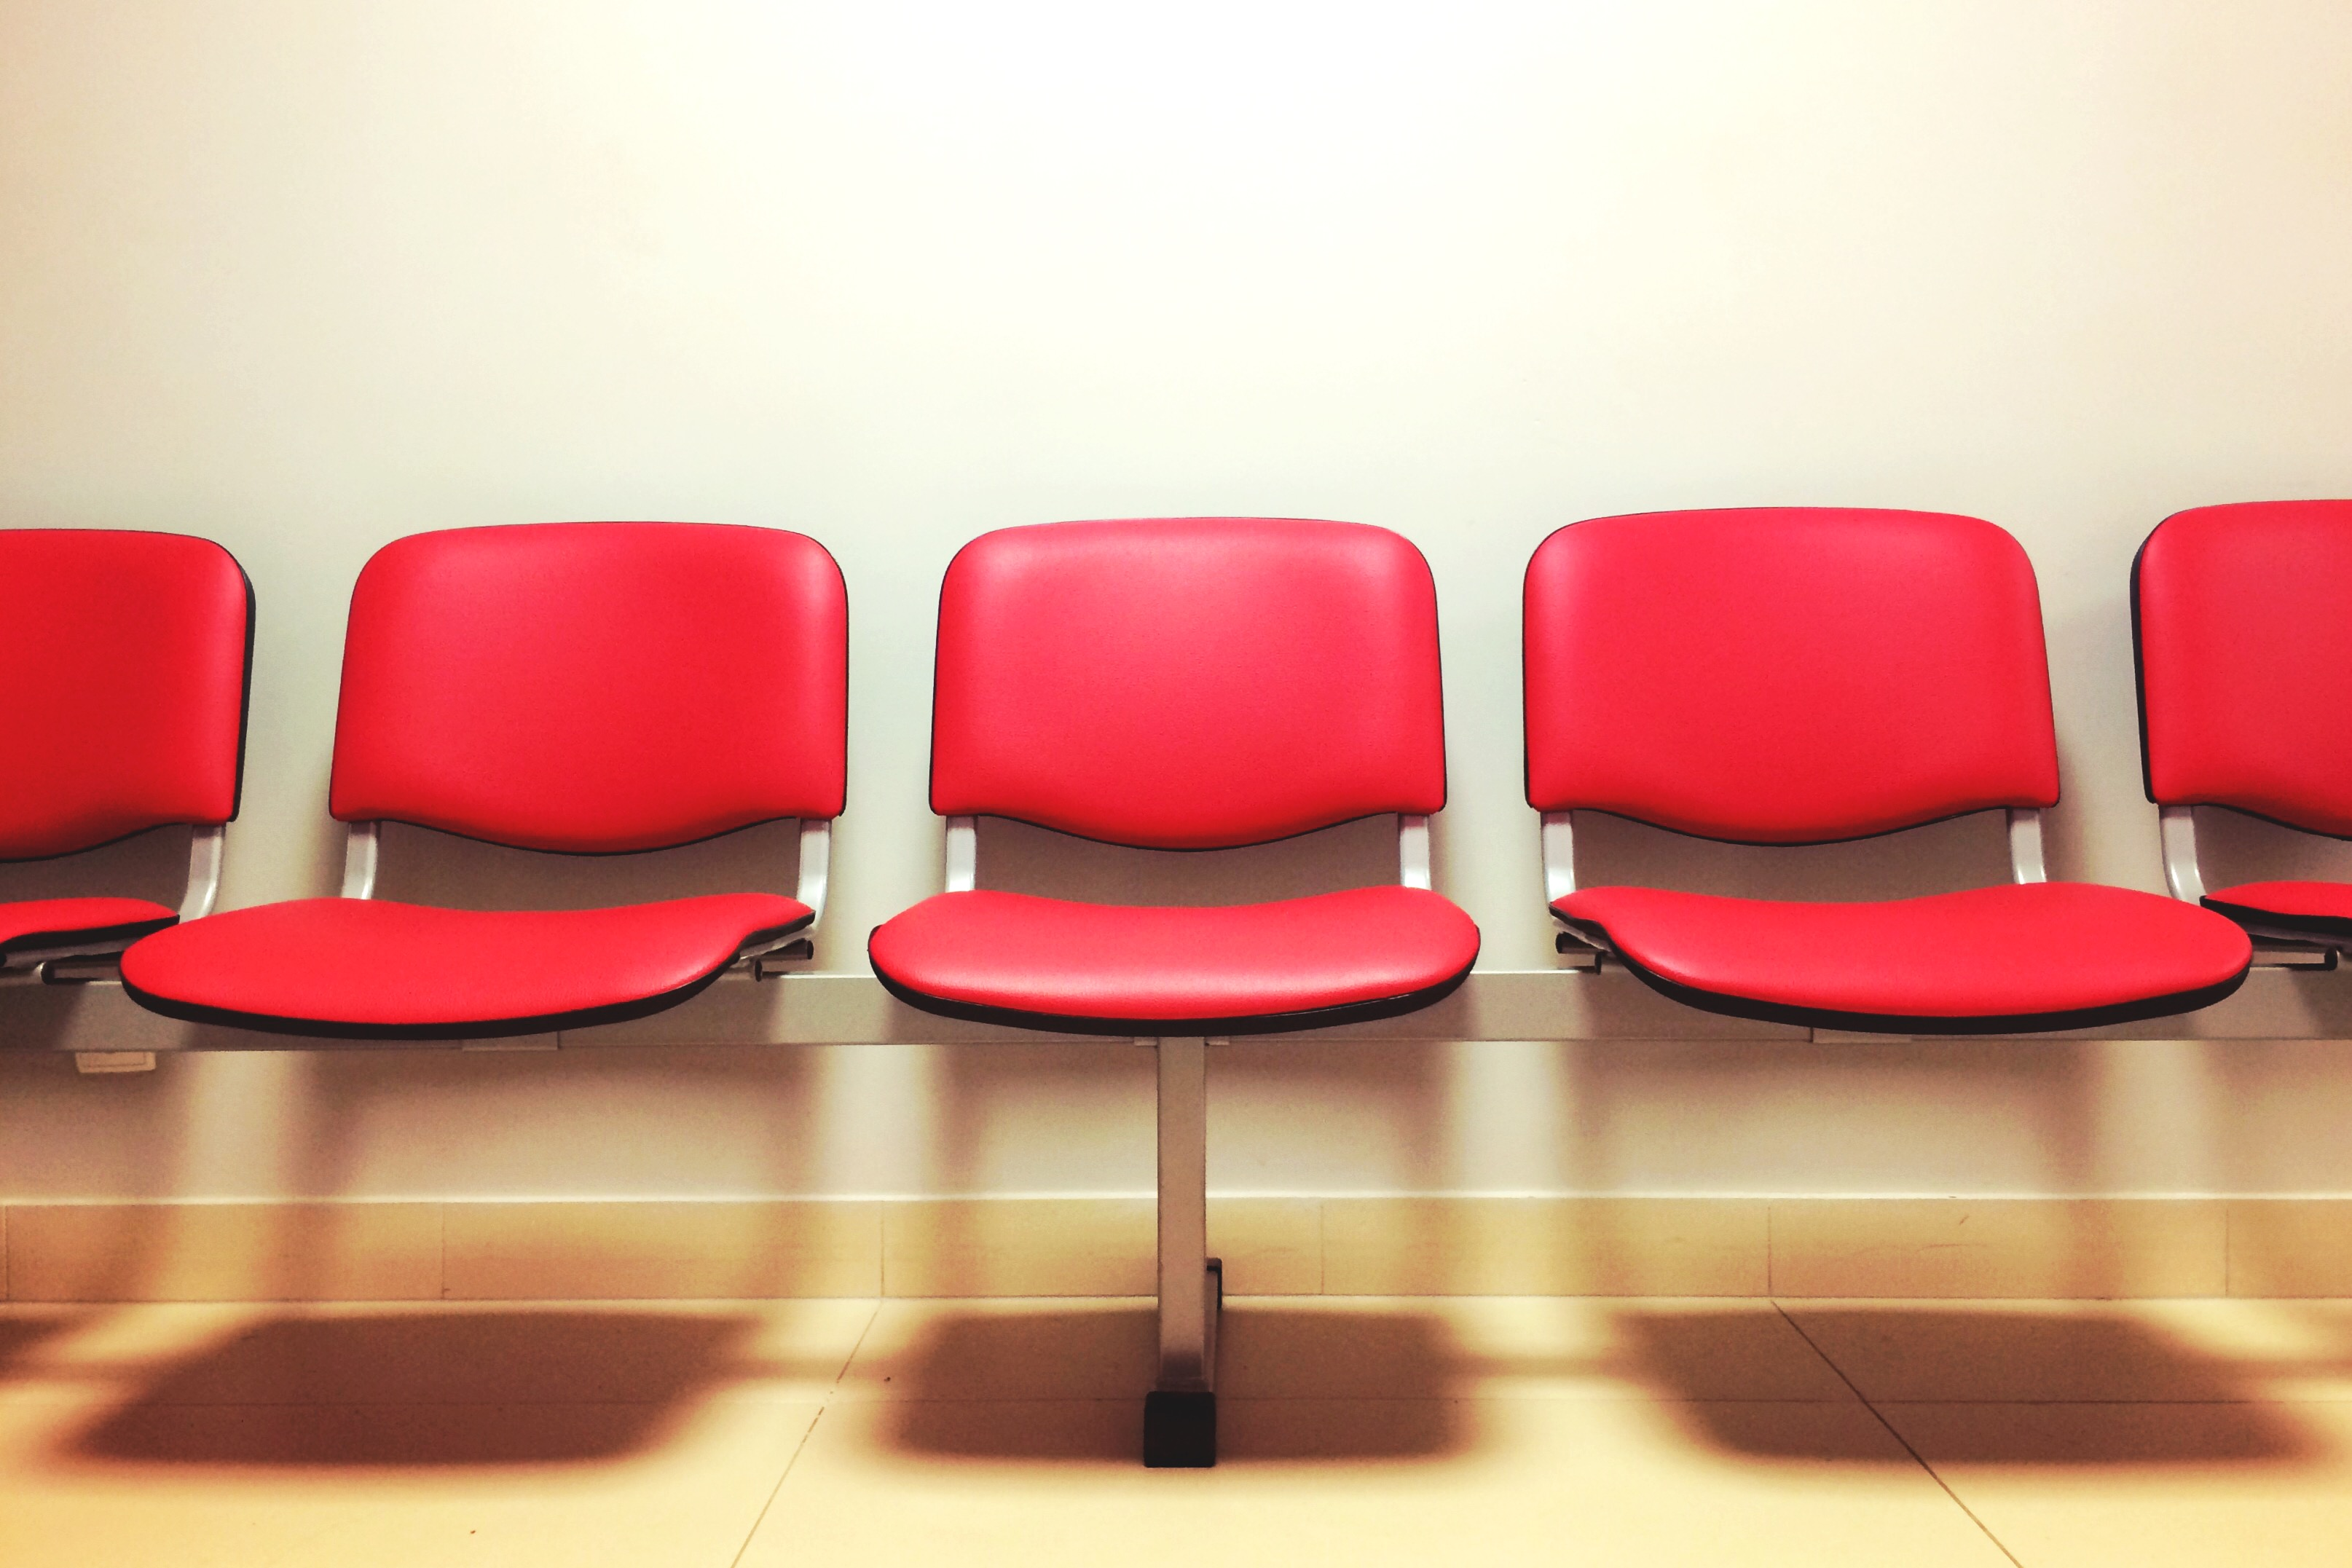 The Death of Chiropractic? A Look Into Chiropractic Standards of Care